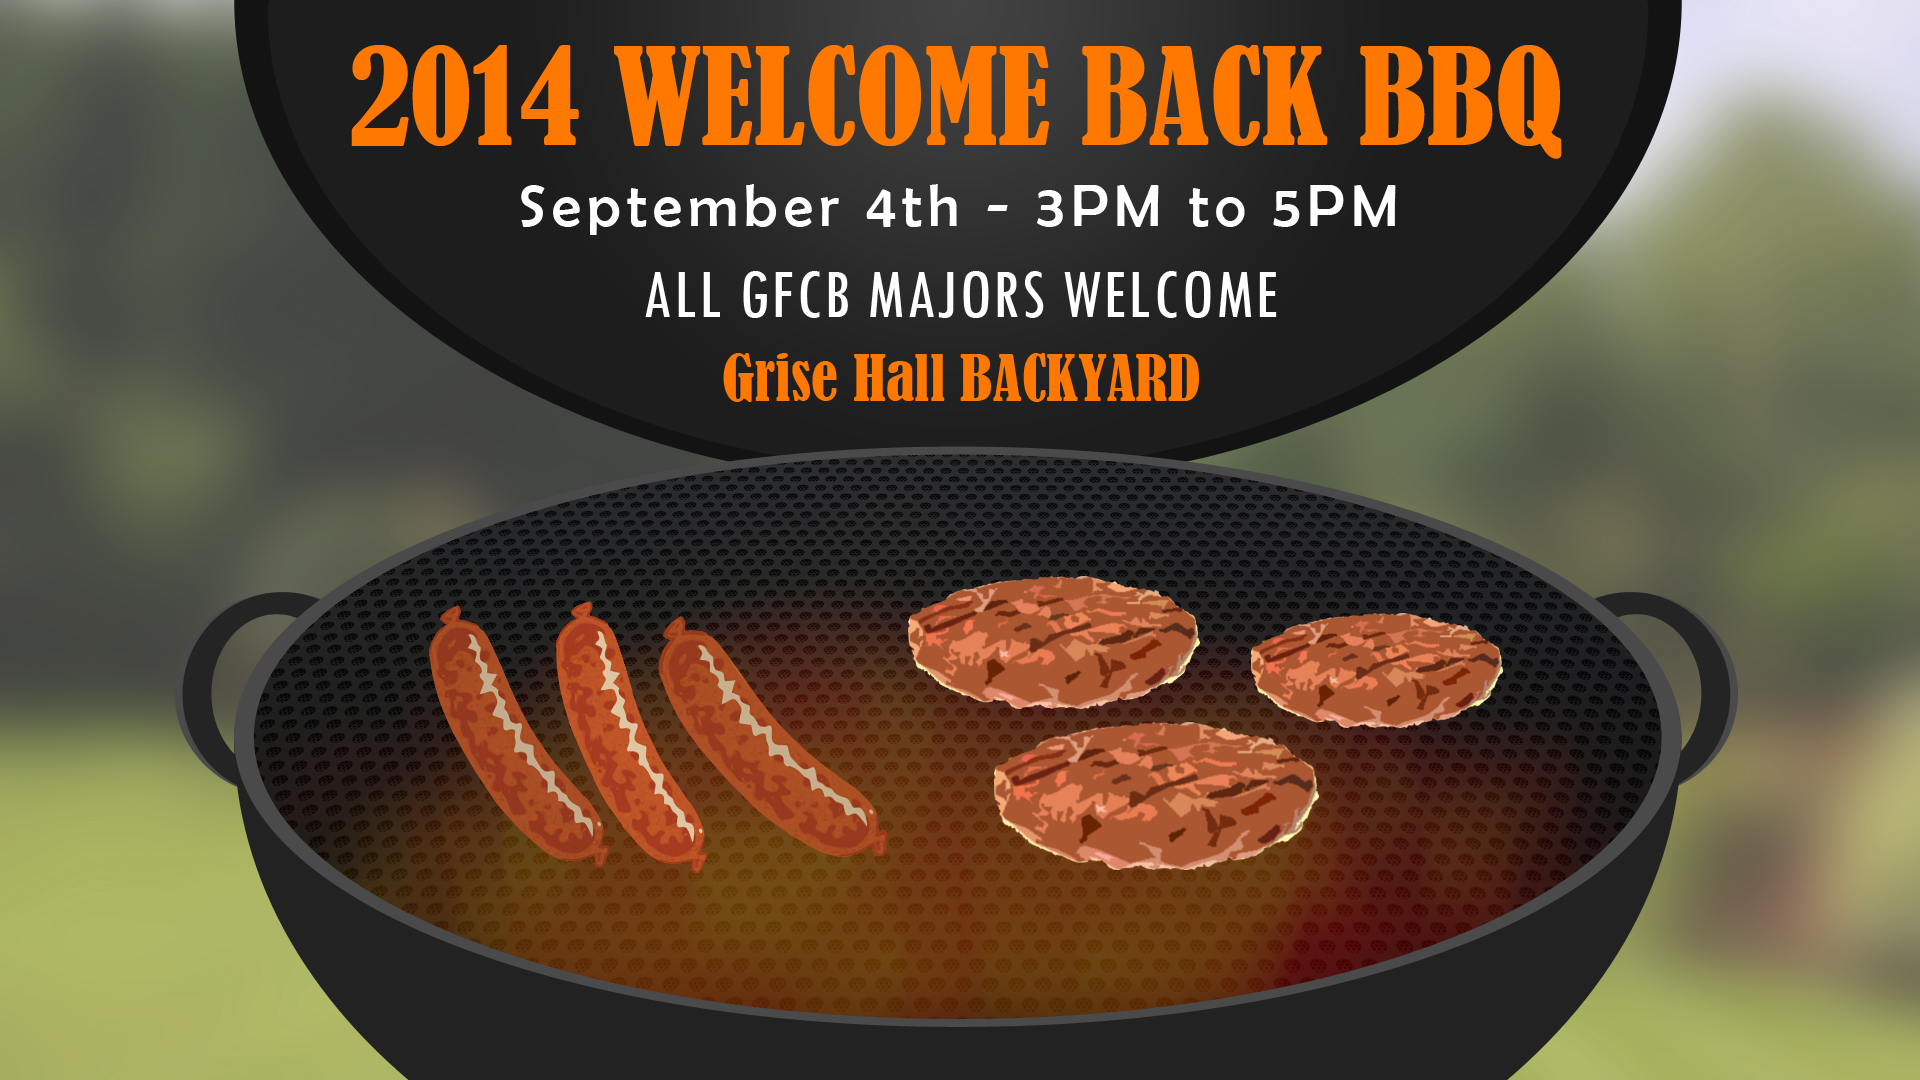 Welcome back BBQ.